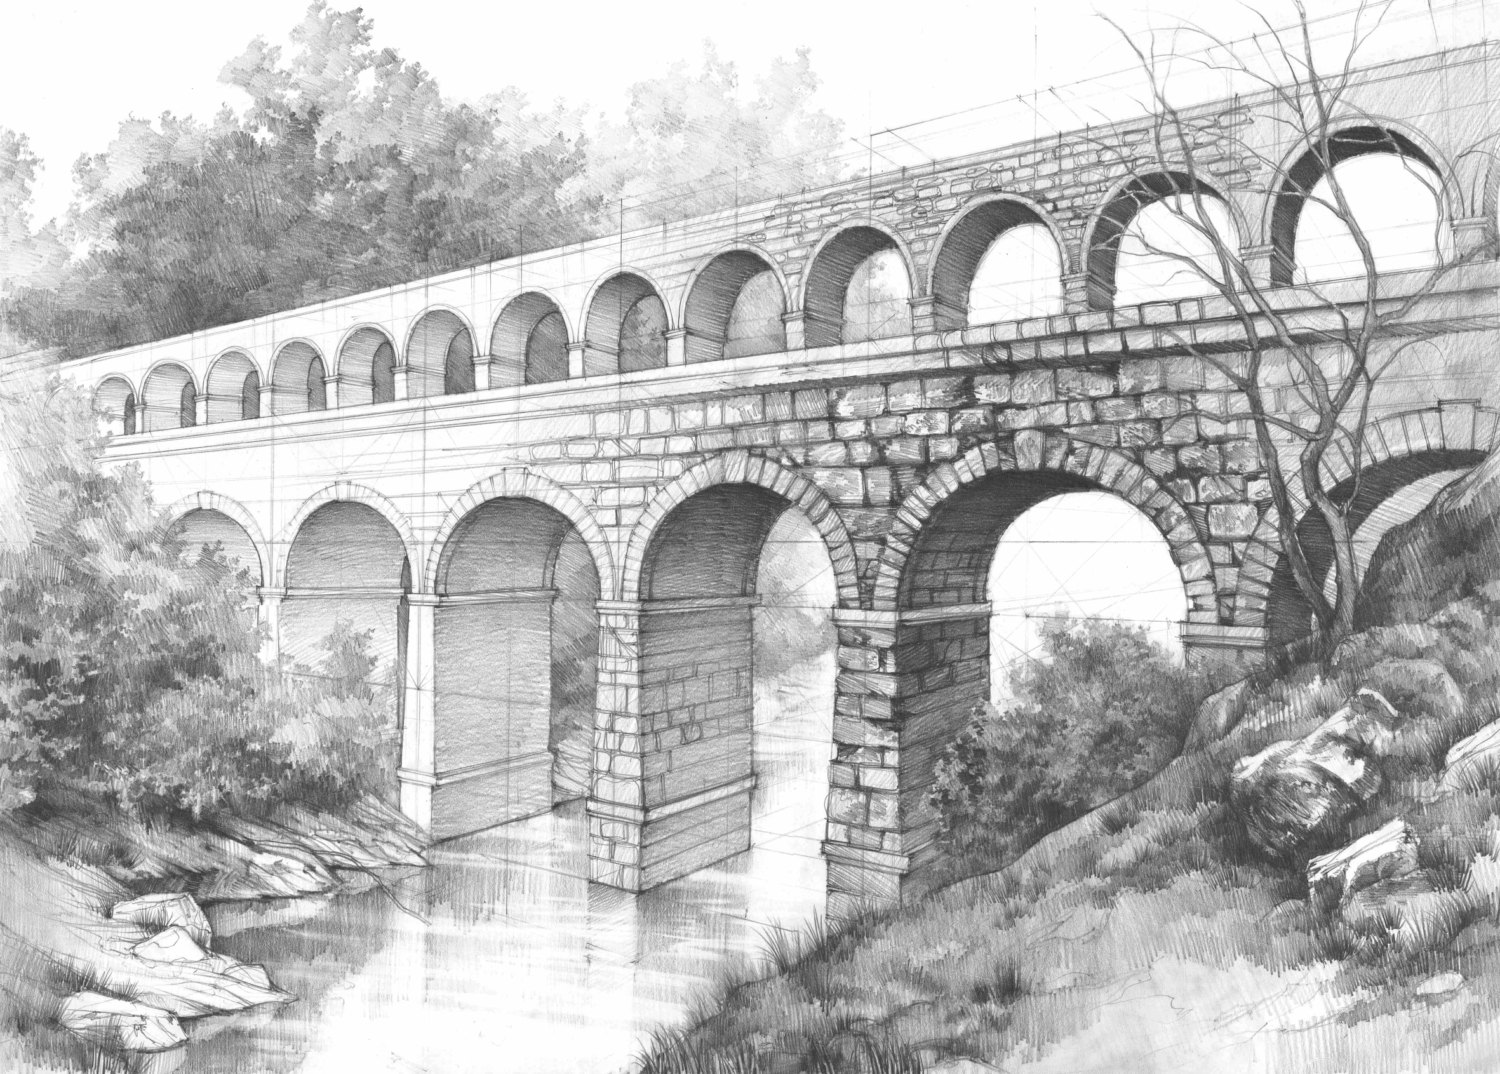 Drawn bridge civil engineering Pencil old architecture Kmiecik Katarzyna